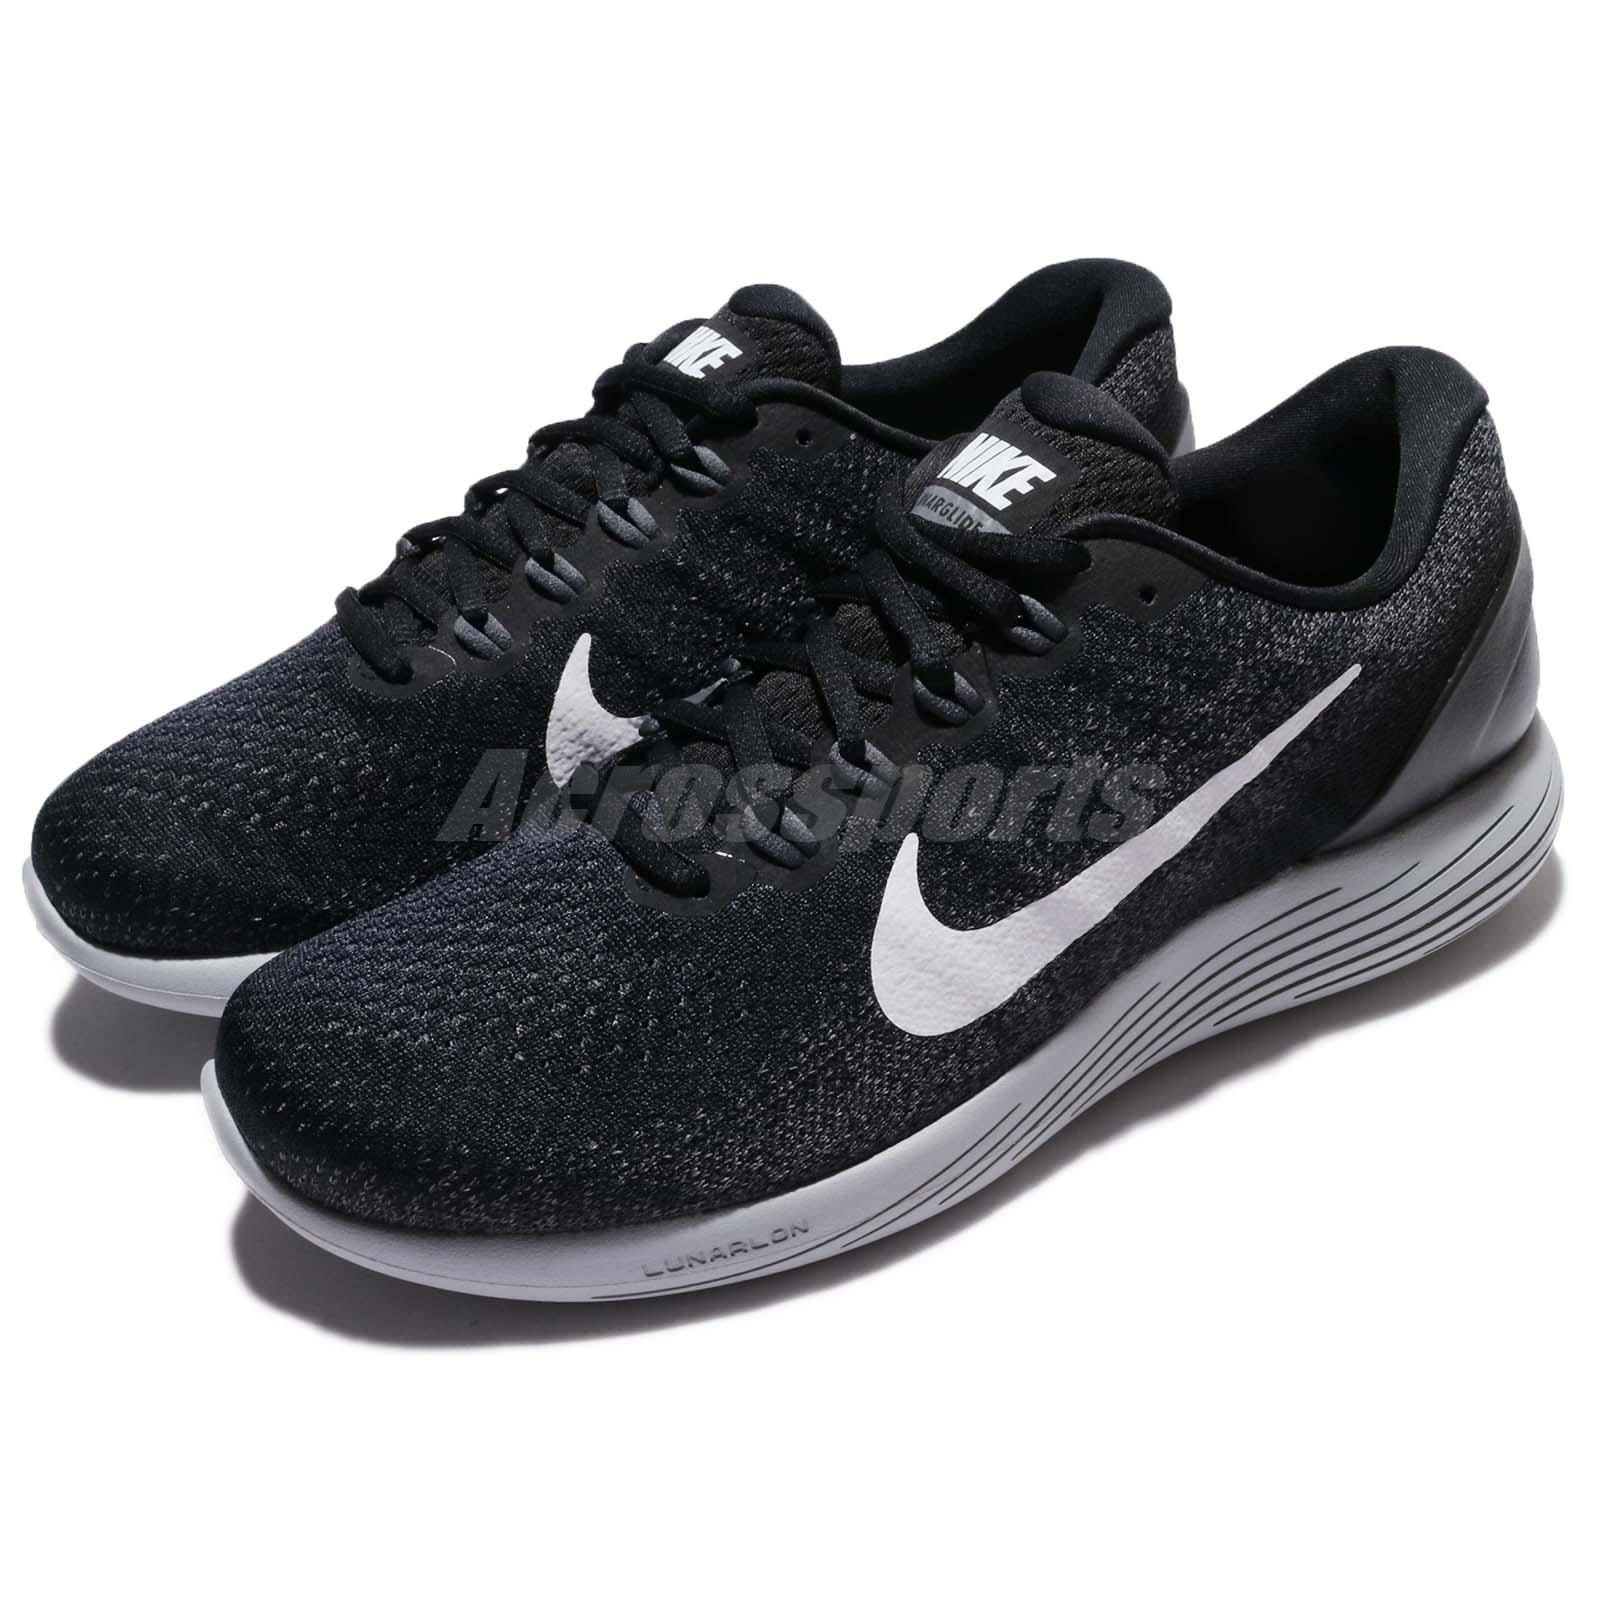 ea77f2ee79c6 Details about Nike Lunarglide 9 IX Black White Grey Men Running Shoes  Trainers 904715-001